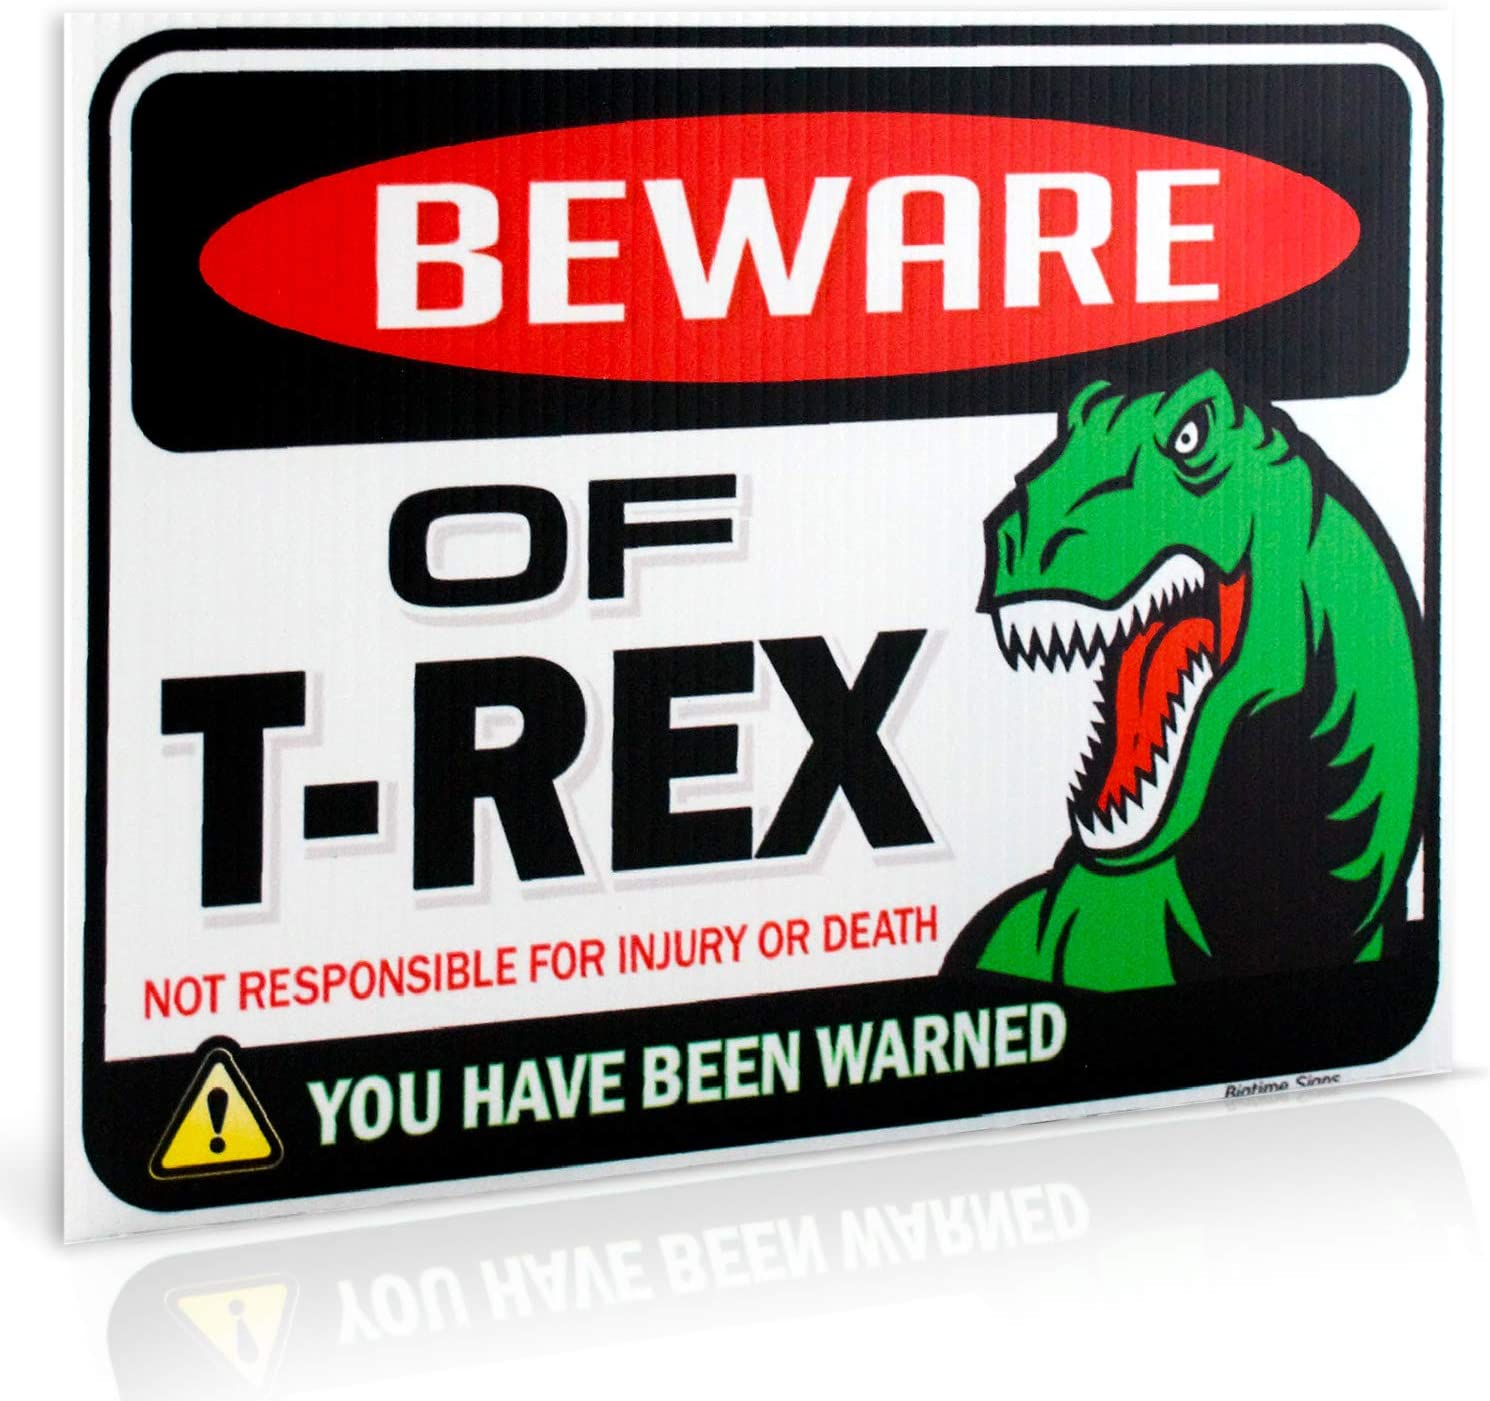 Bigtime Signs Dinosaur Sign: Beware of T Rex Warning Sign - 9 inch x 12 inch - Dino Danger Funny Gag Gifts for Window, Office, Bedroom Decor, lockers - Trex Corrugated Plastic for Indoor or Outdoor